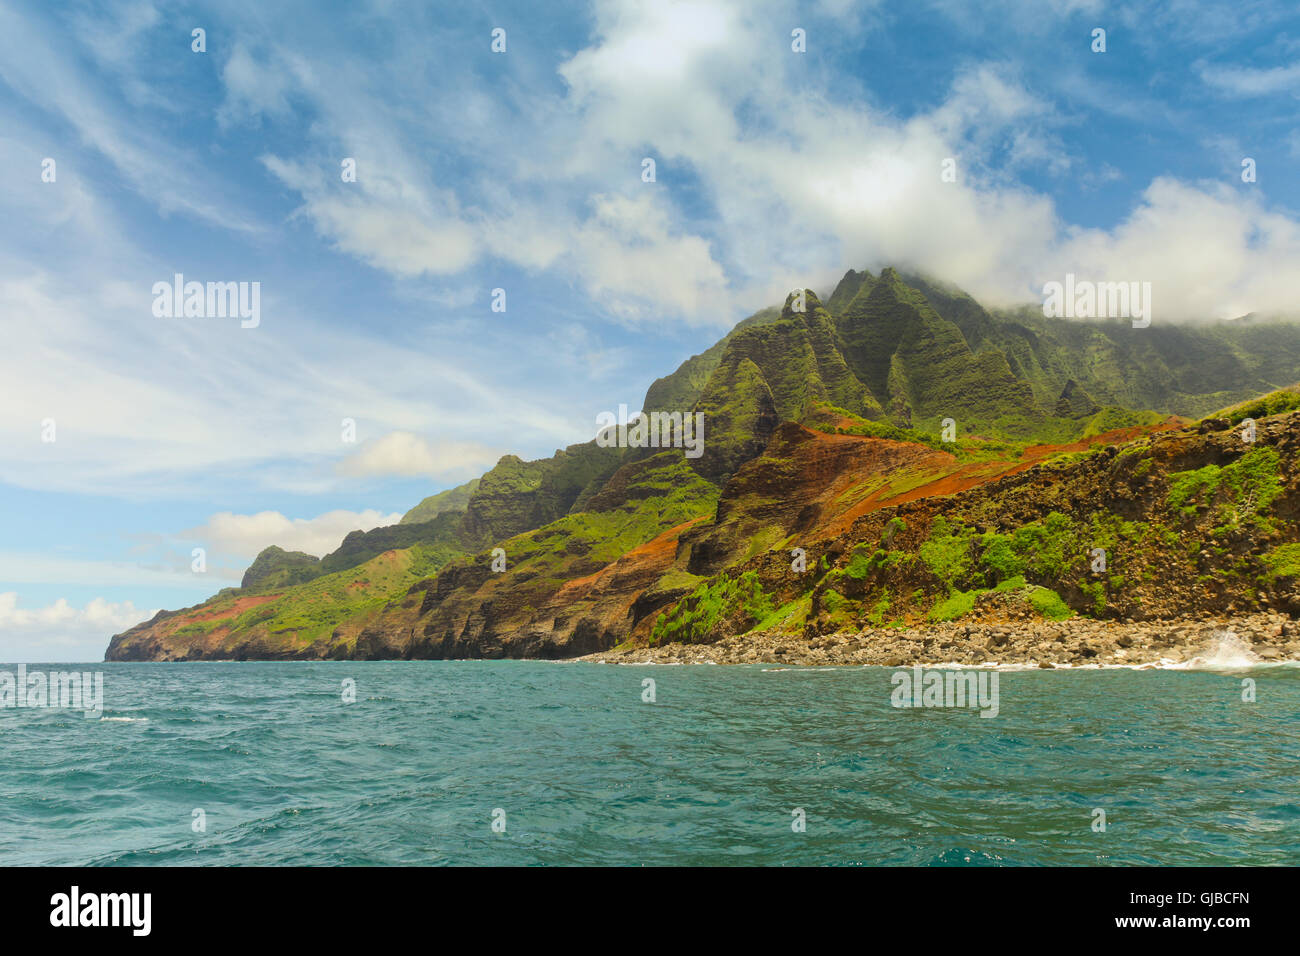 The rugged NaPali Coastline of Kauai, Hawaii. - Stock Image